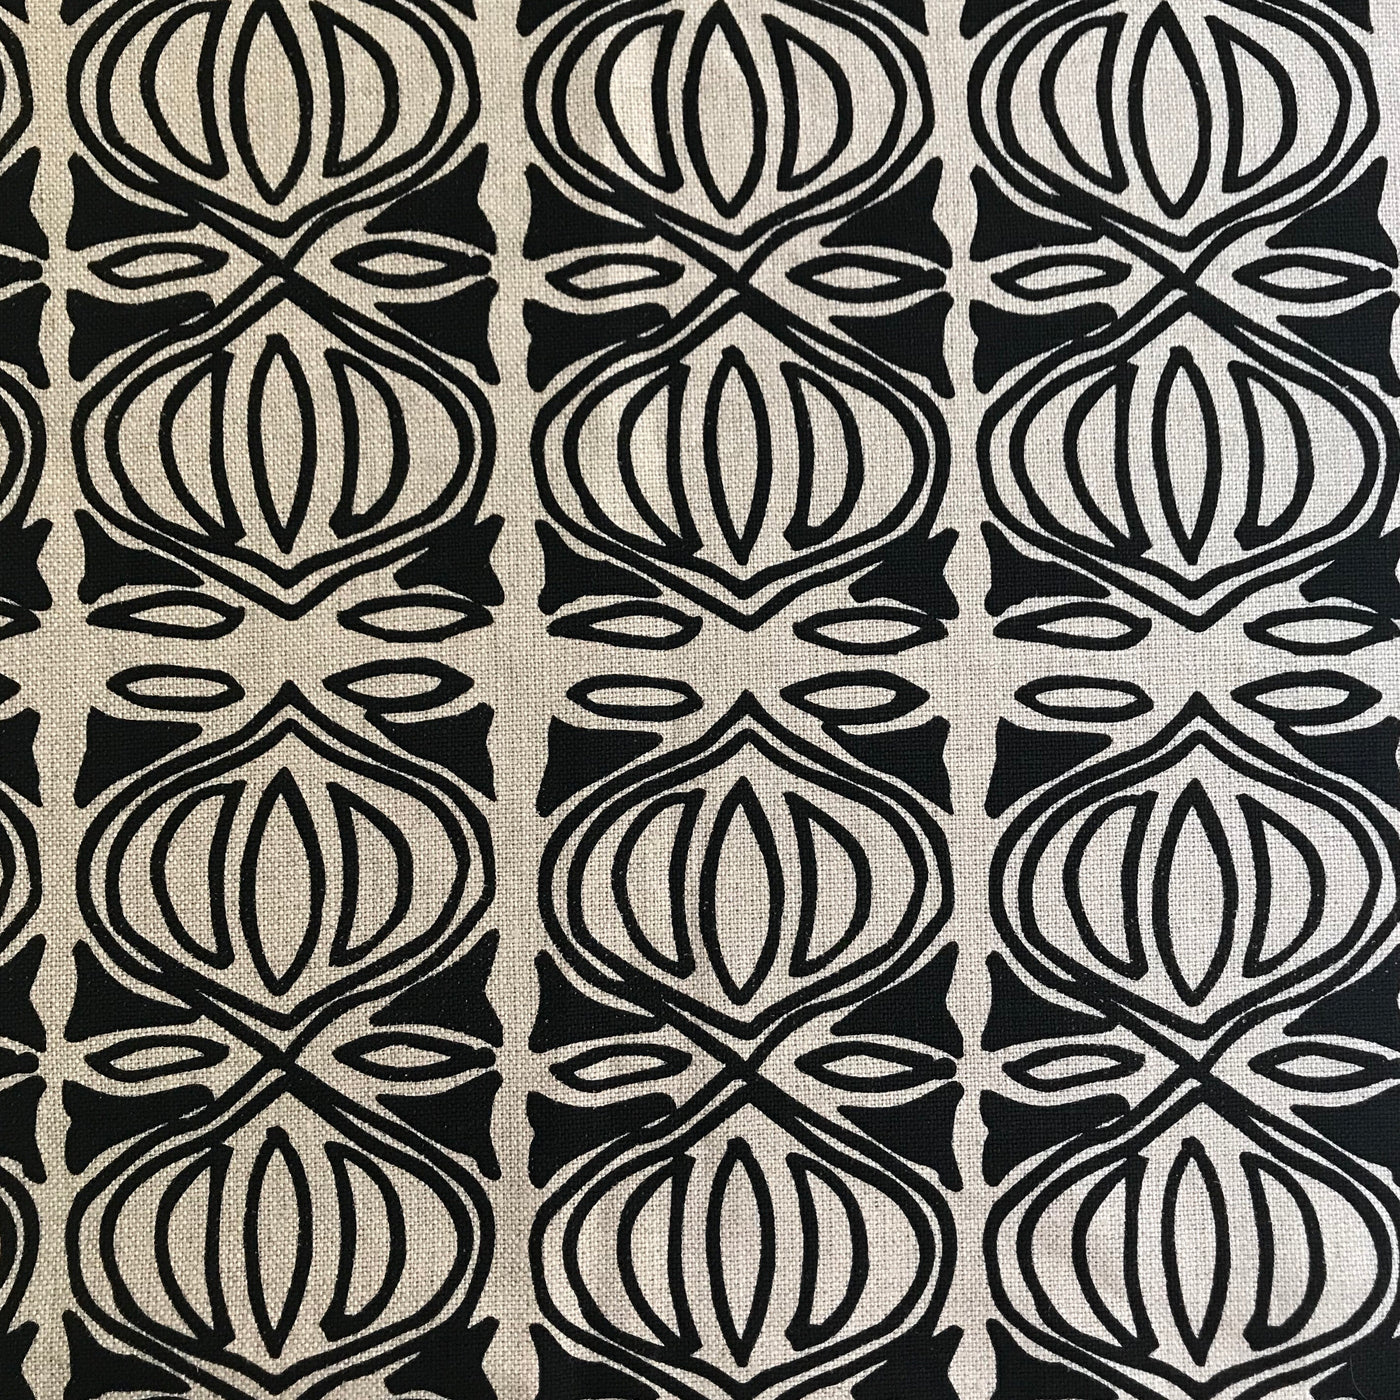 Holiday Fabric Black on Natural greige textiles